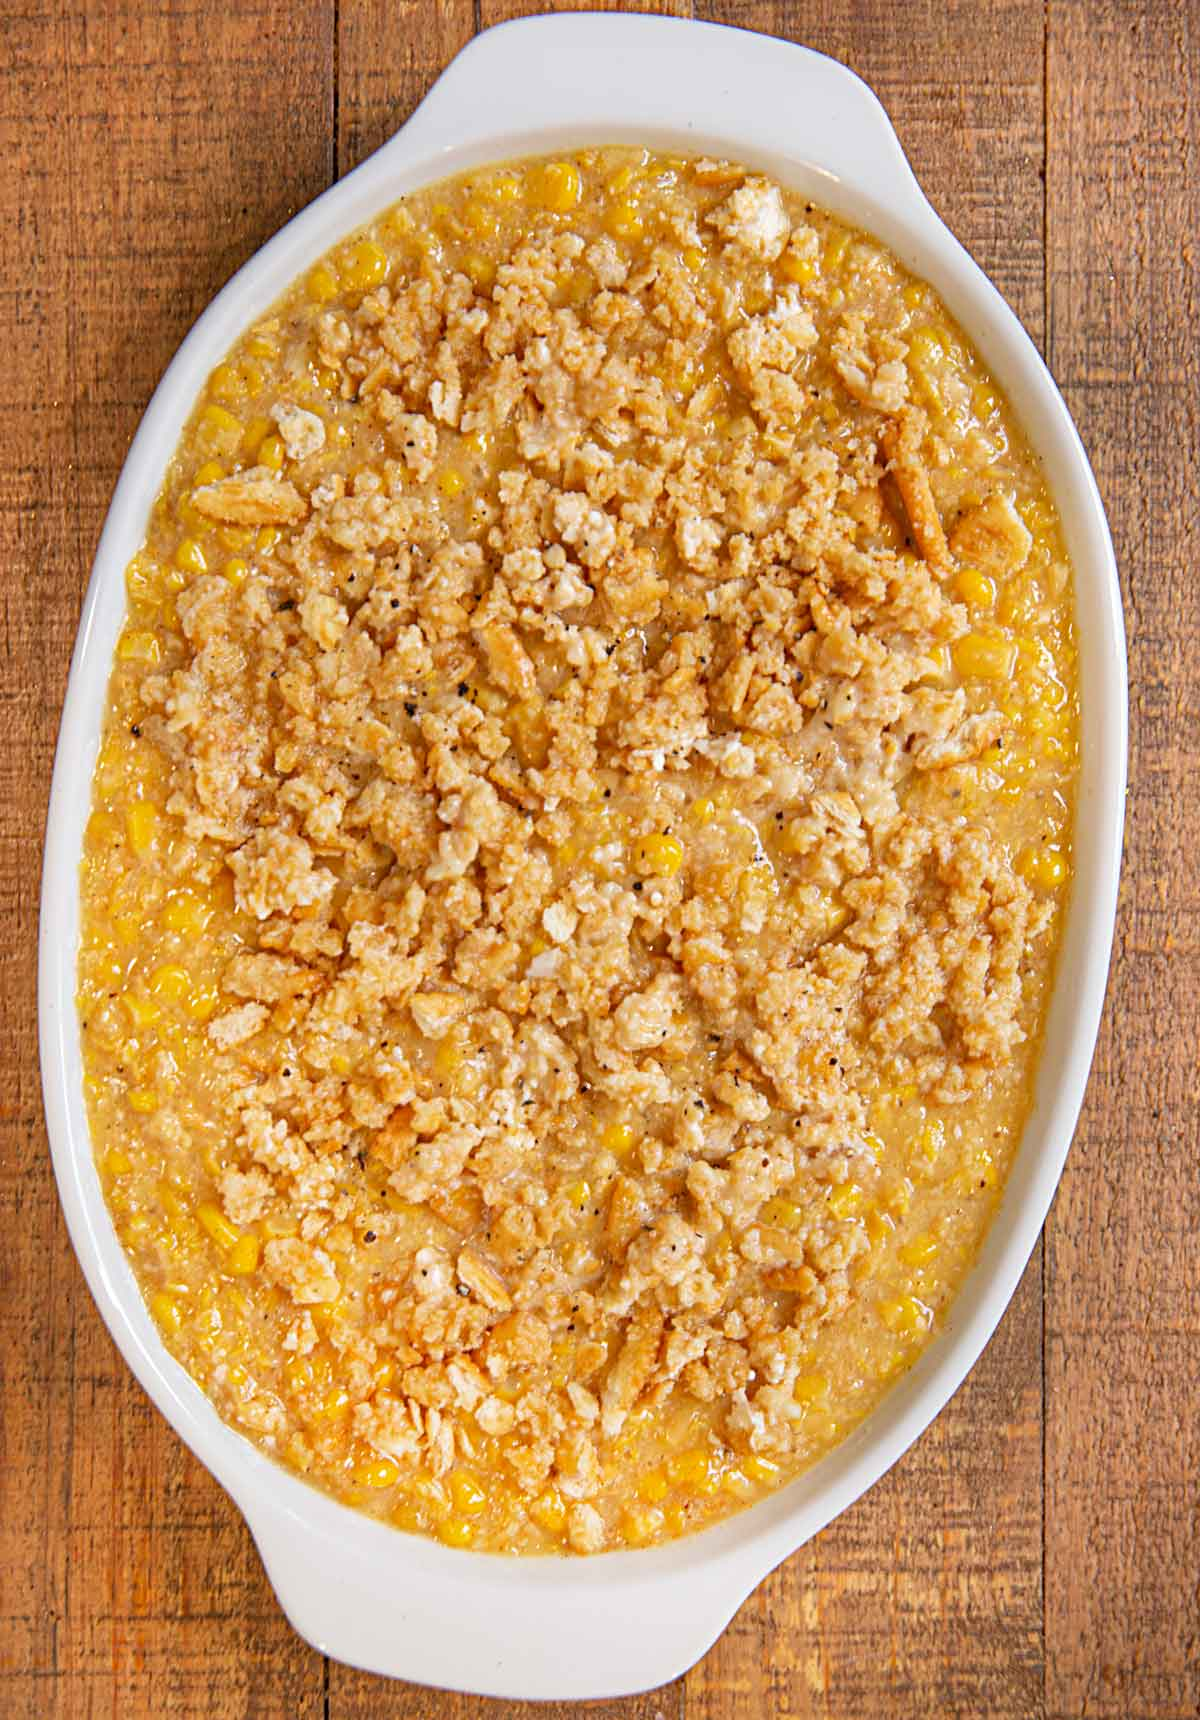 Scalloped Corn before baking